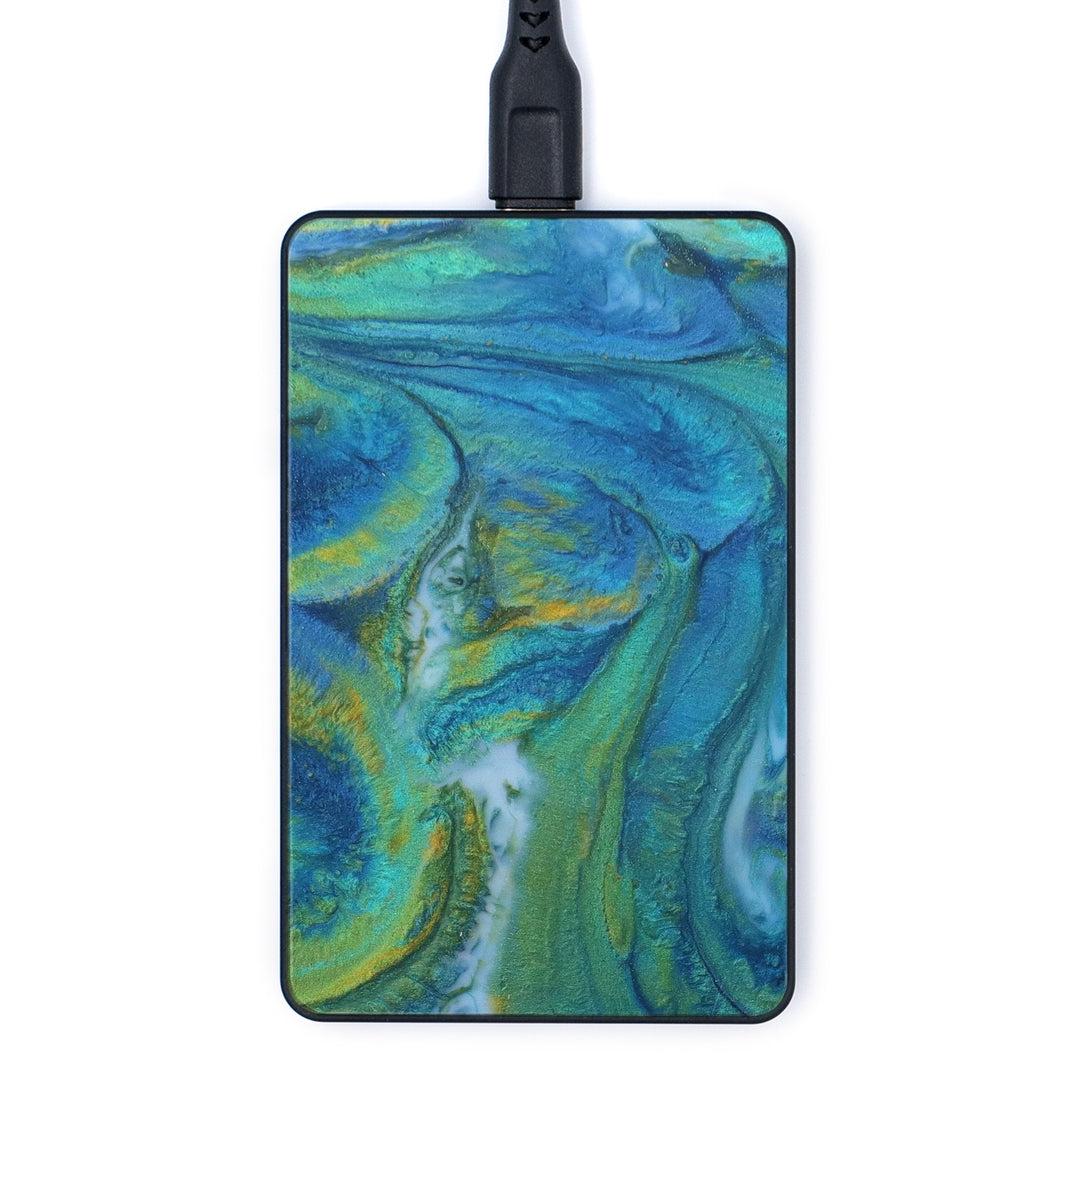 Thin ResinArt Wireless Charger - Nevsa (Teal & Gold, 347553)